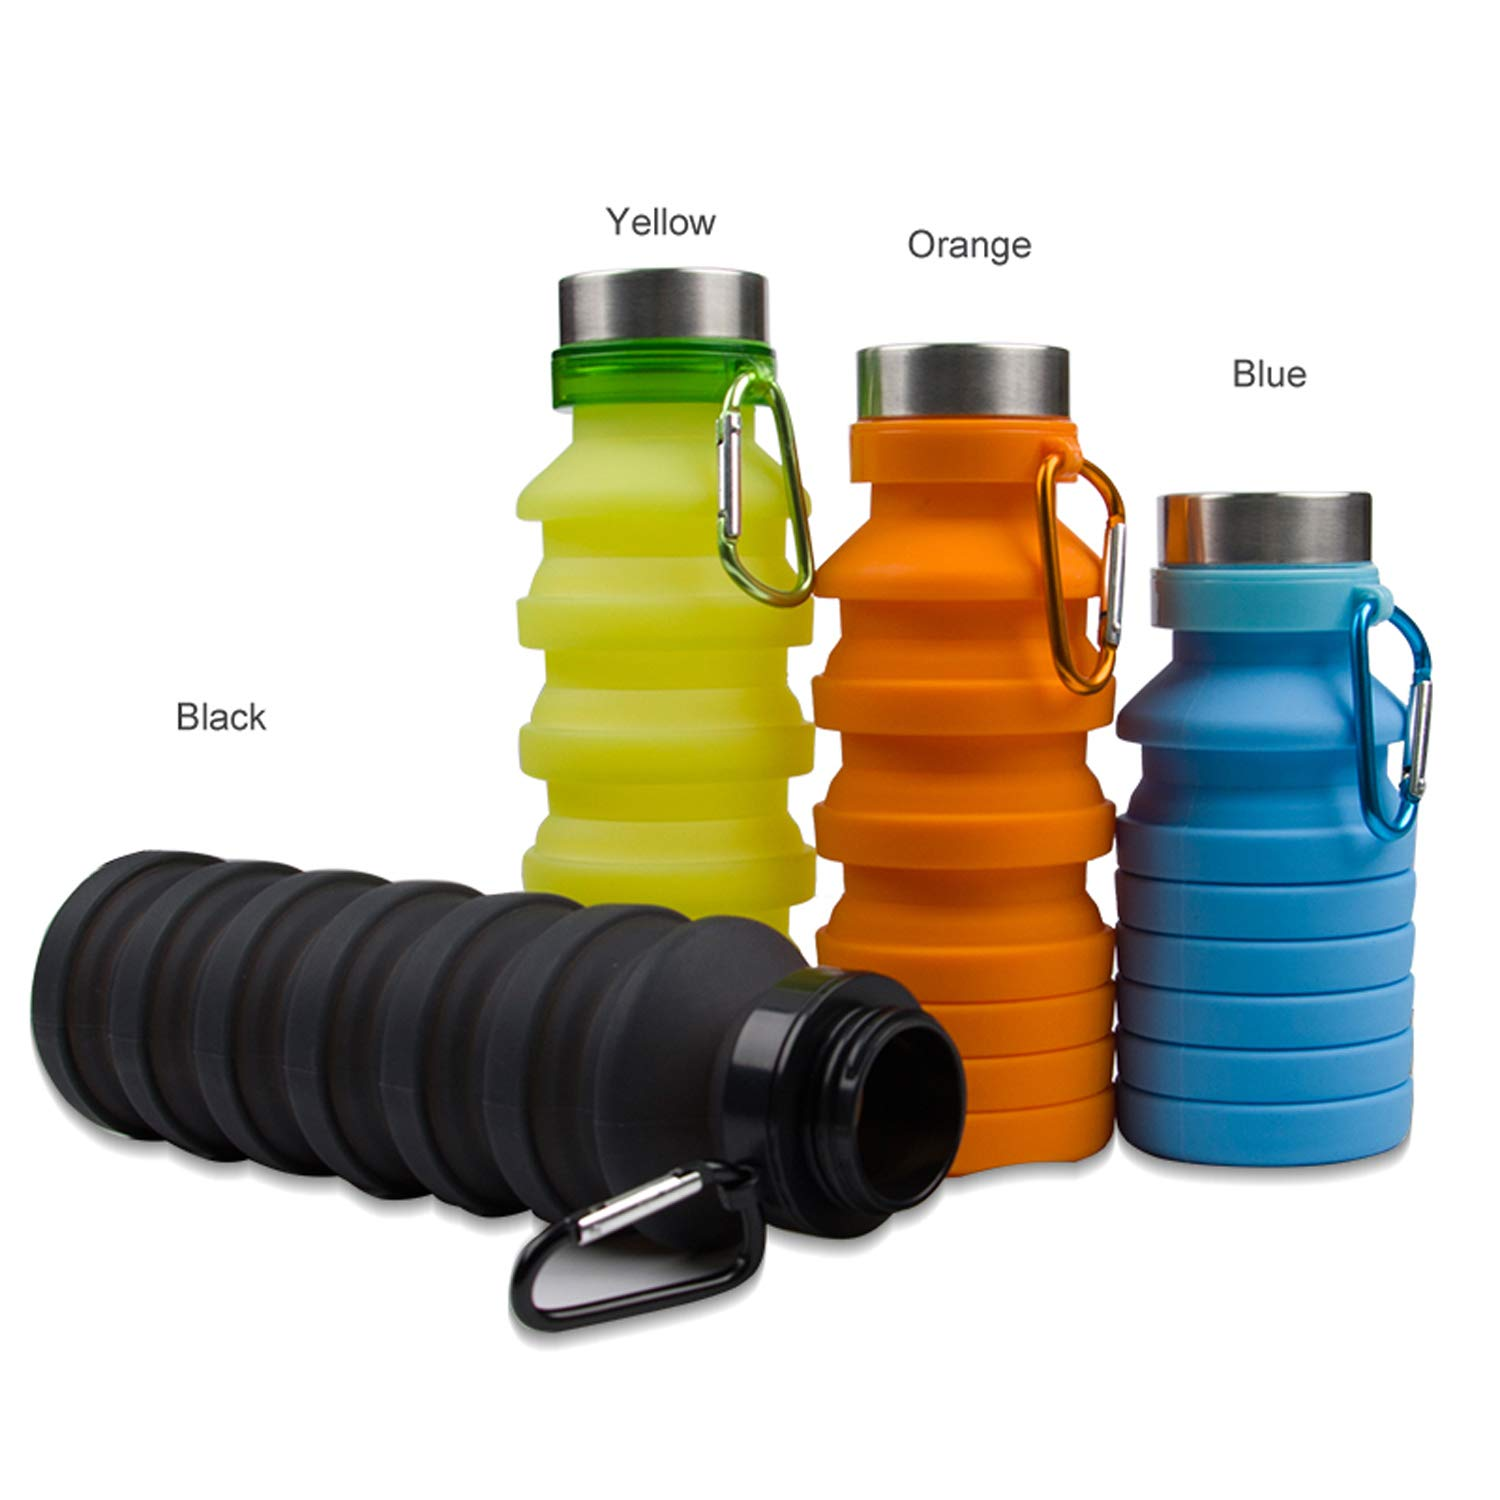 HRDiQiu Collapsible Water Bottle Silicone BPA Free Leakproof Lightweight Portable Foldable Sports Travel Camping Outdoor Water Bottles with Carabiner